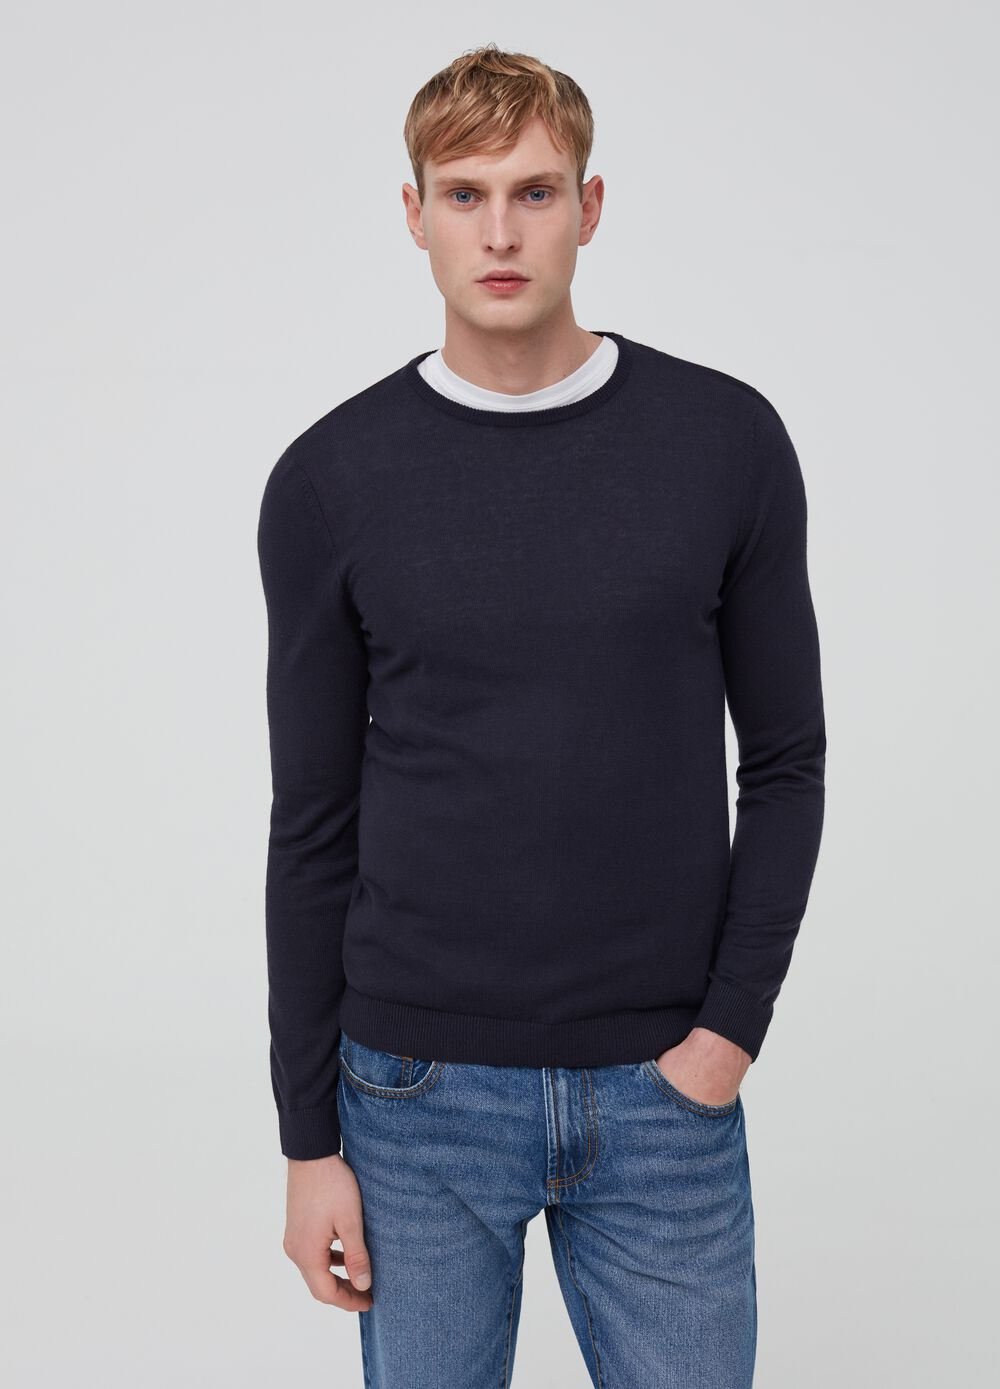 Knitted pullover with round neck